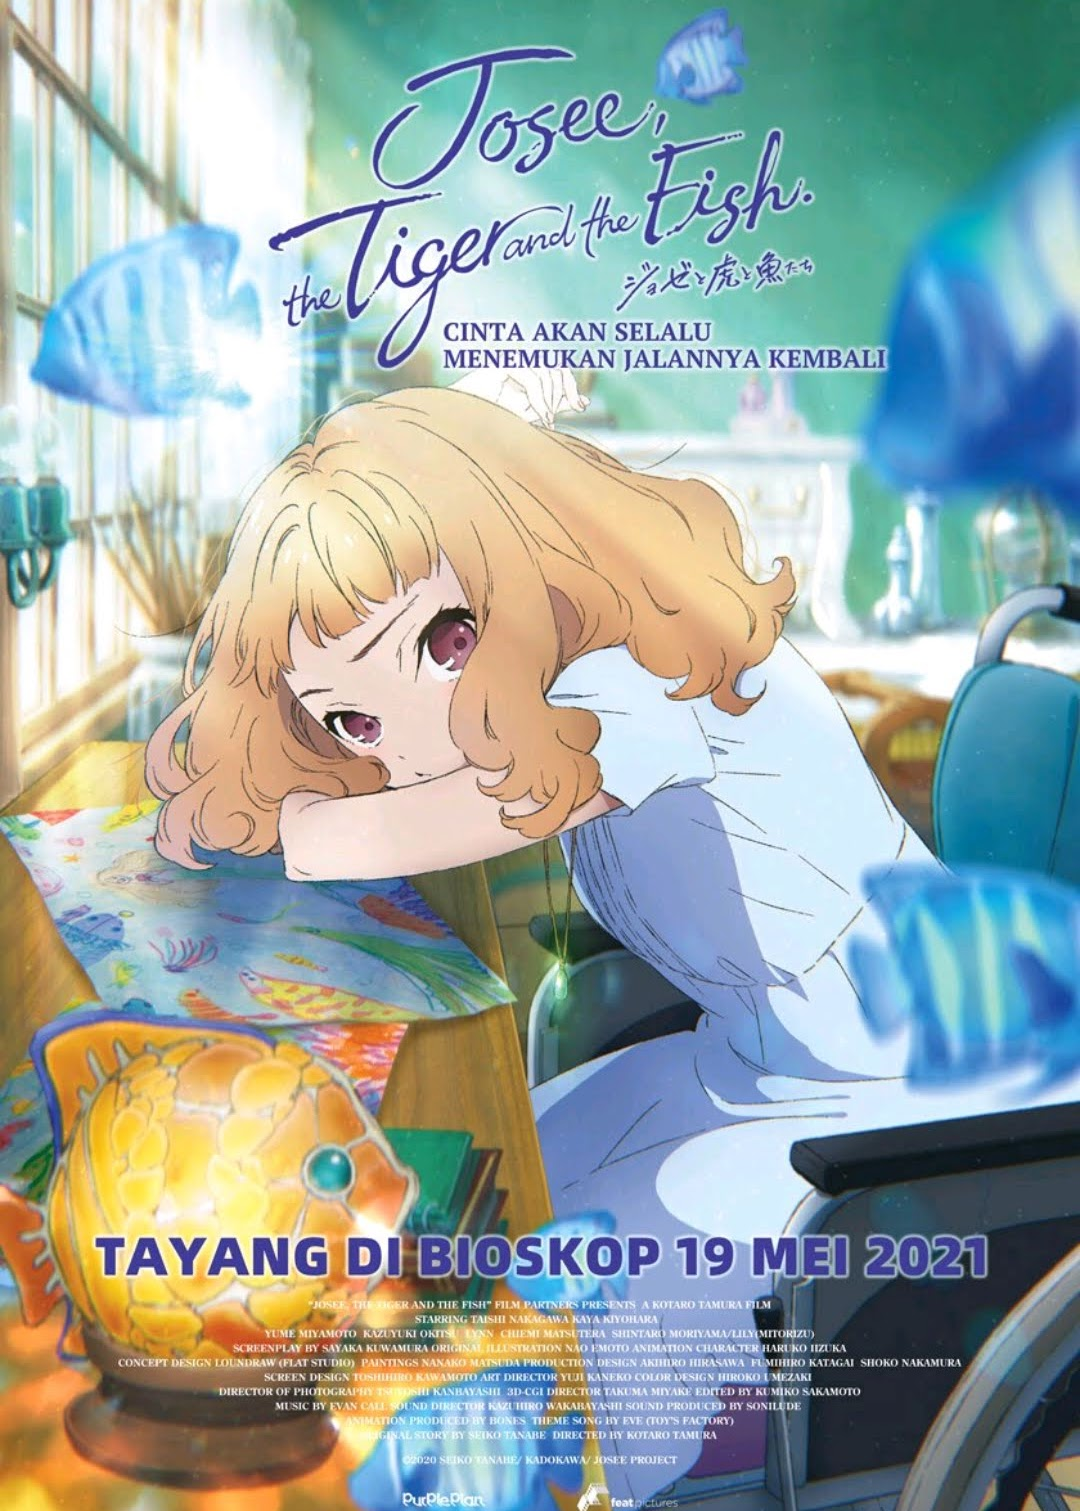 Josee the Tiger and the Fish subtitle Indonesia, review anime Josee the Tiger and the fish